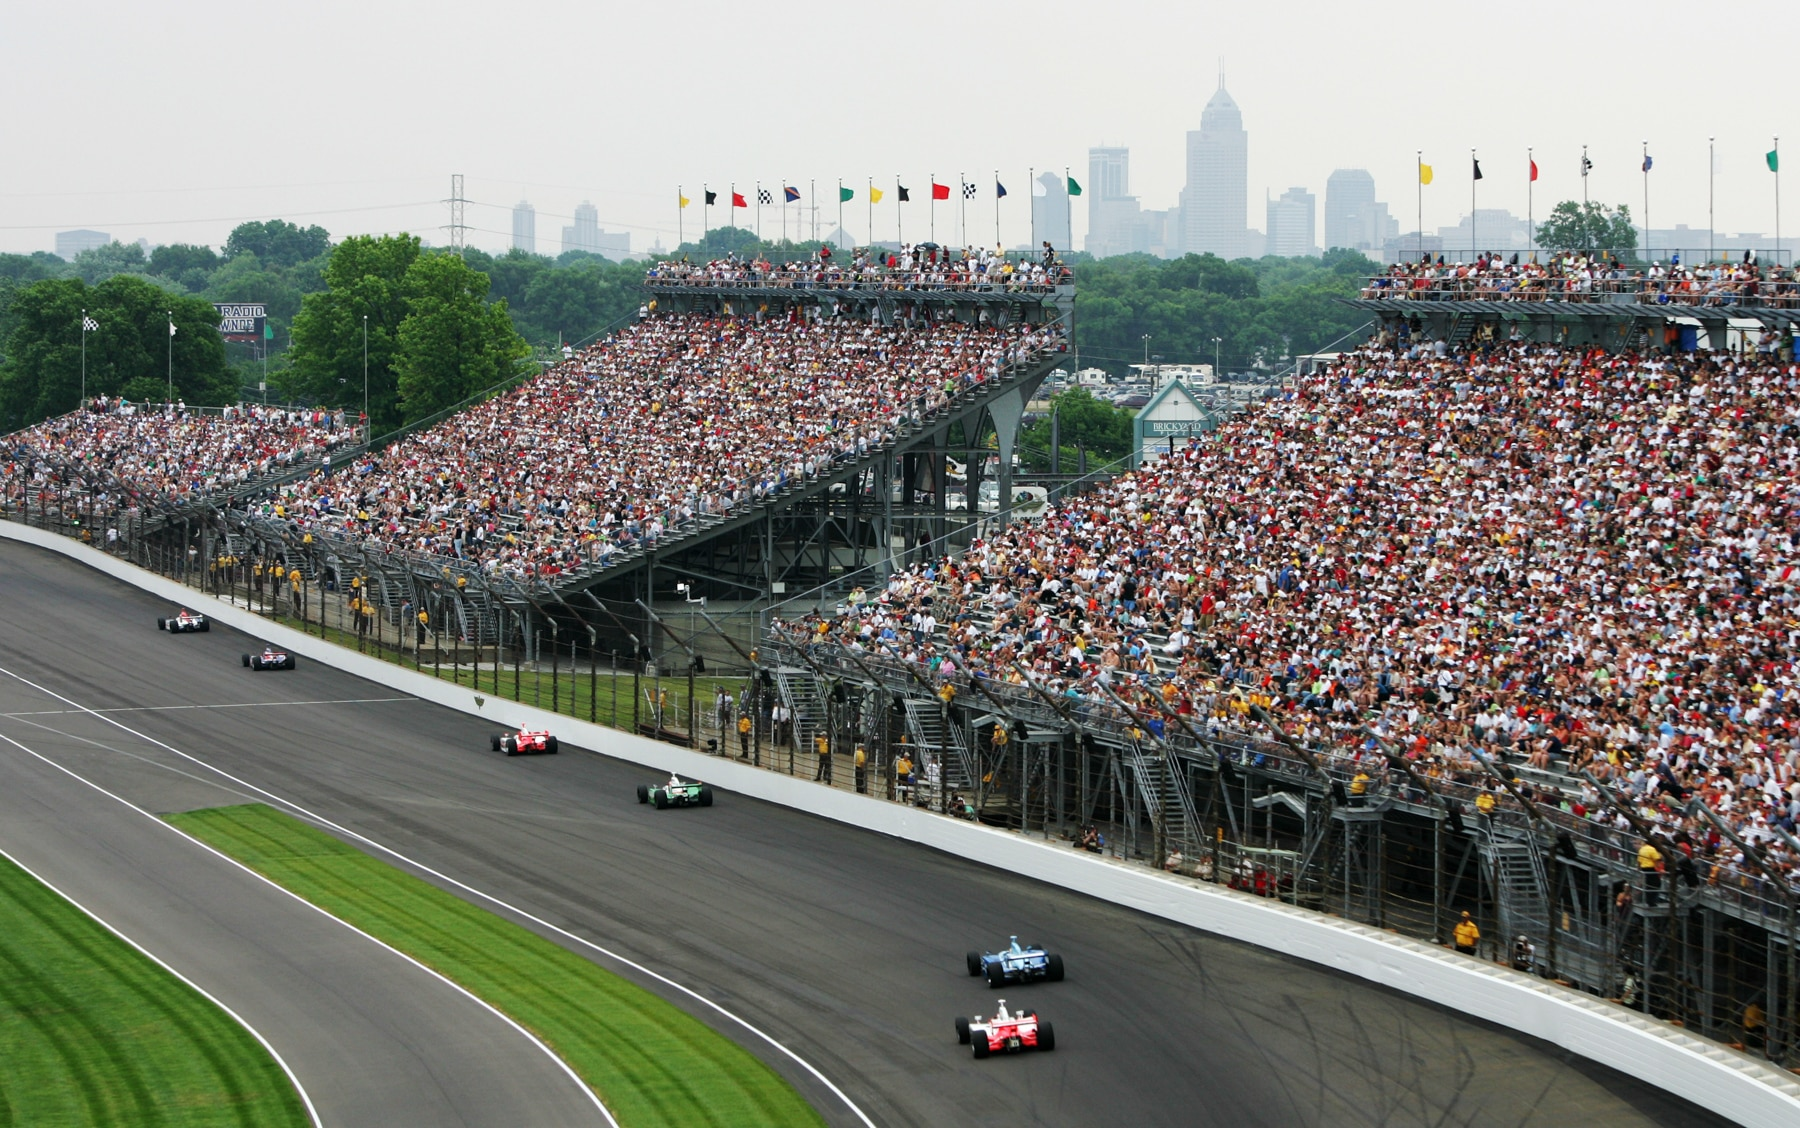 Cars racing on racetrack, large crowd in stands (© Robert Laberge/Getty Images)